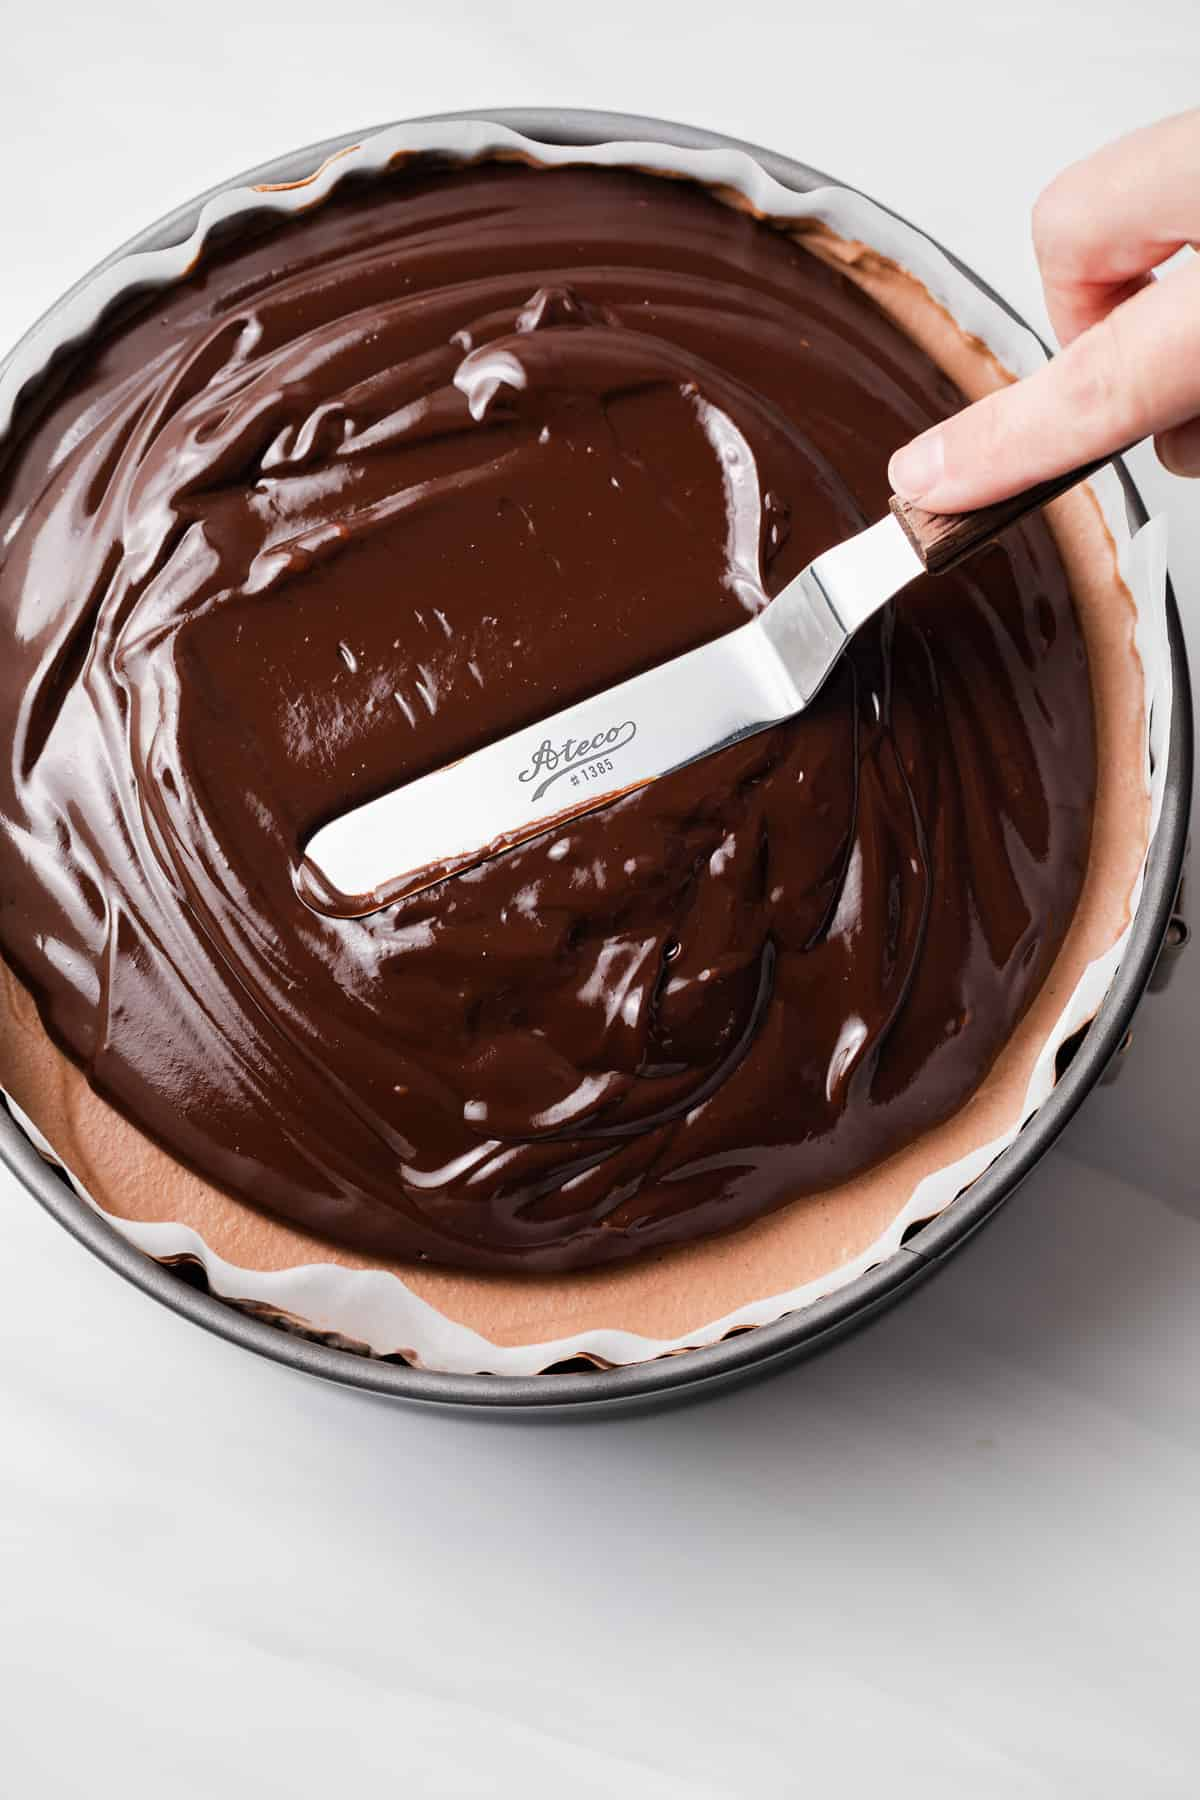 Ganache spread over mousse cake in pan.